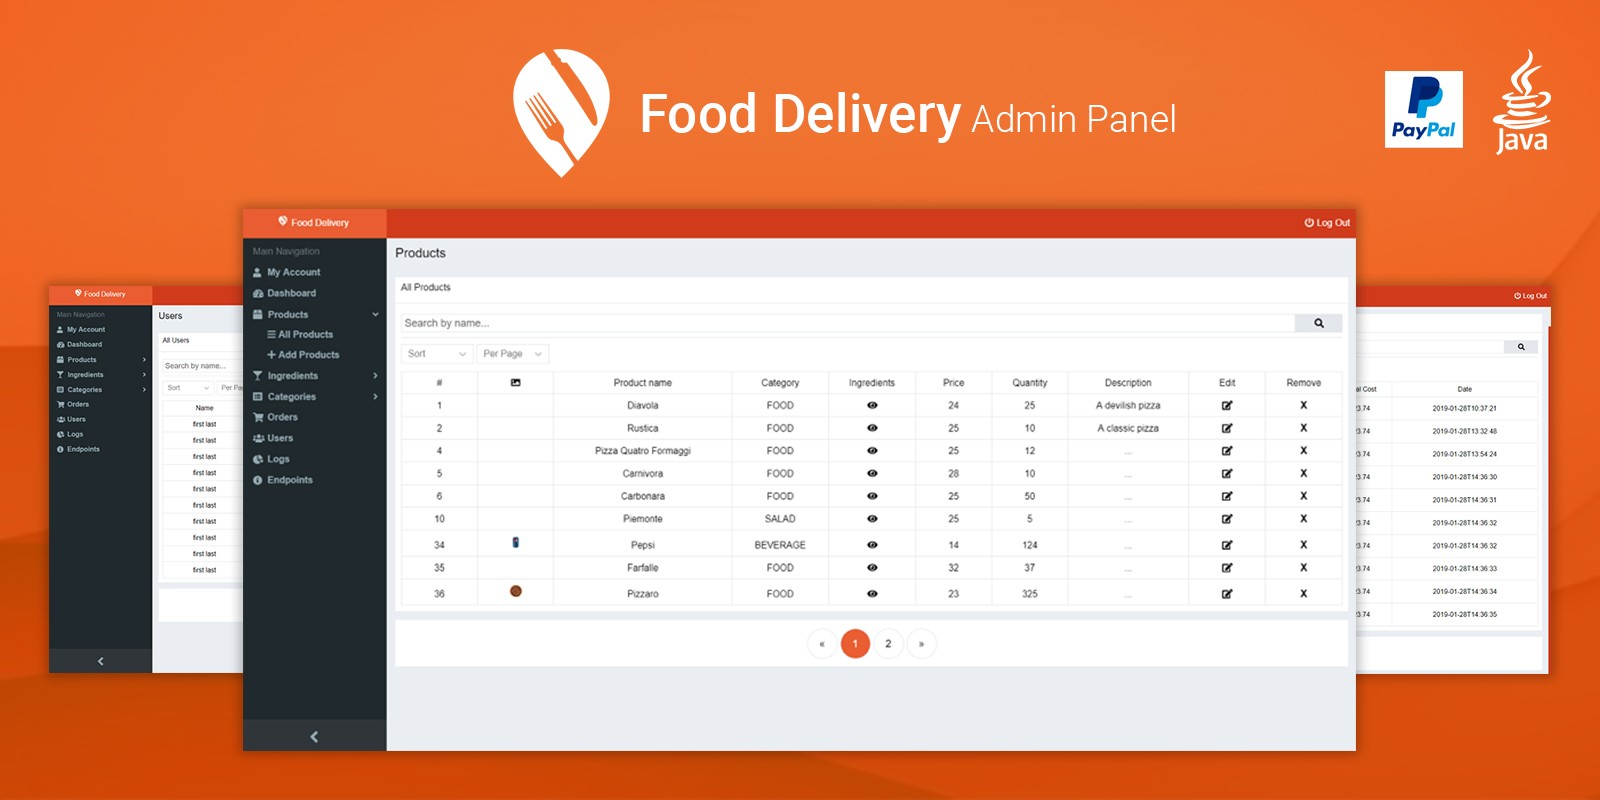 Food Delivery Admin Panel - Java CMS